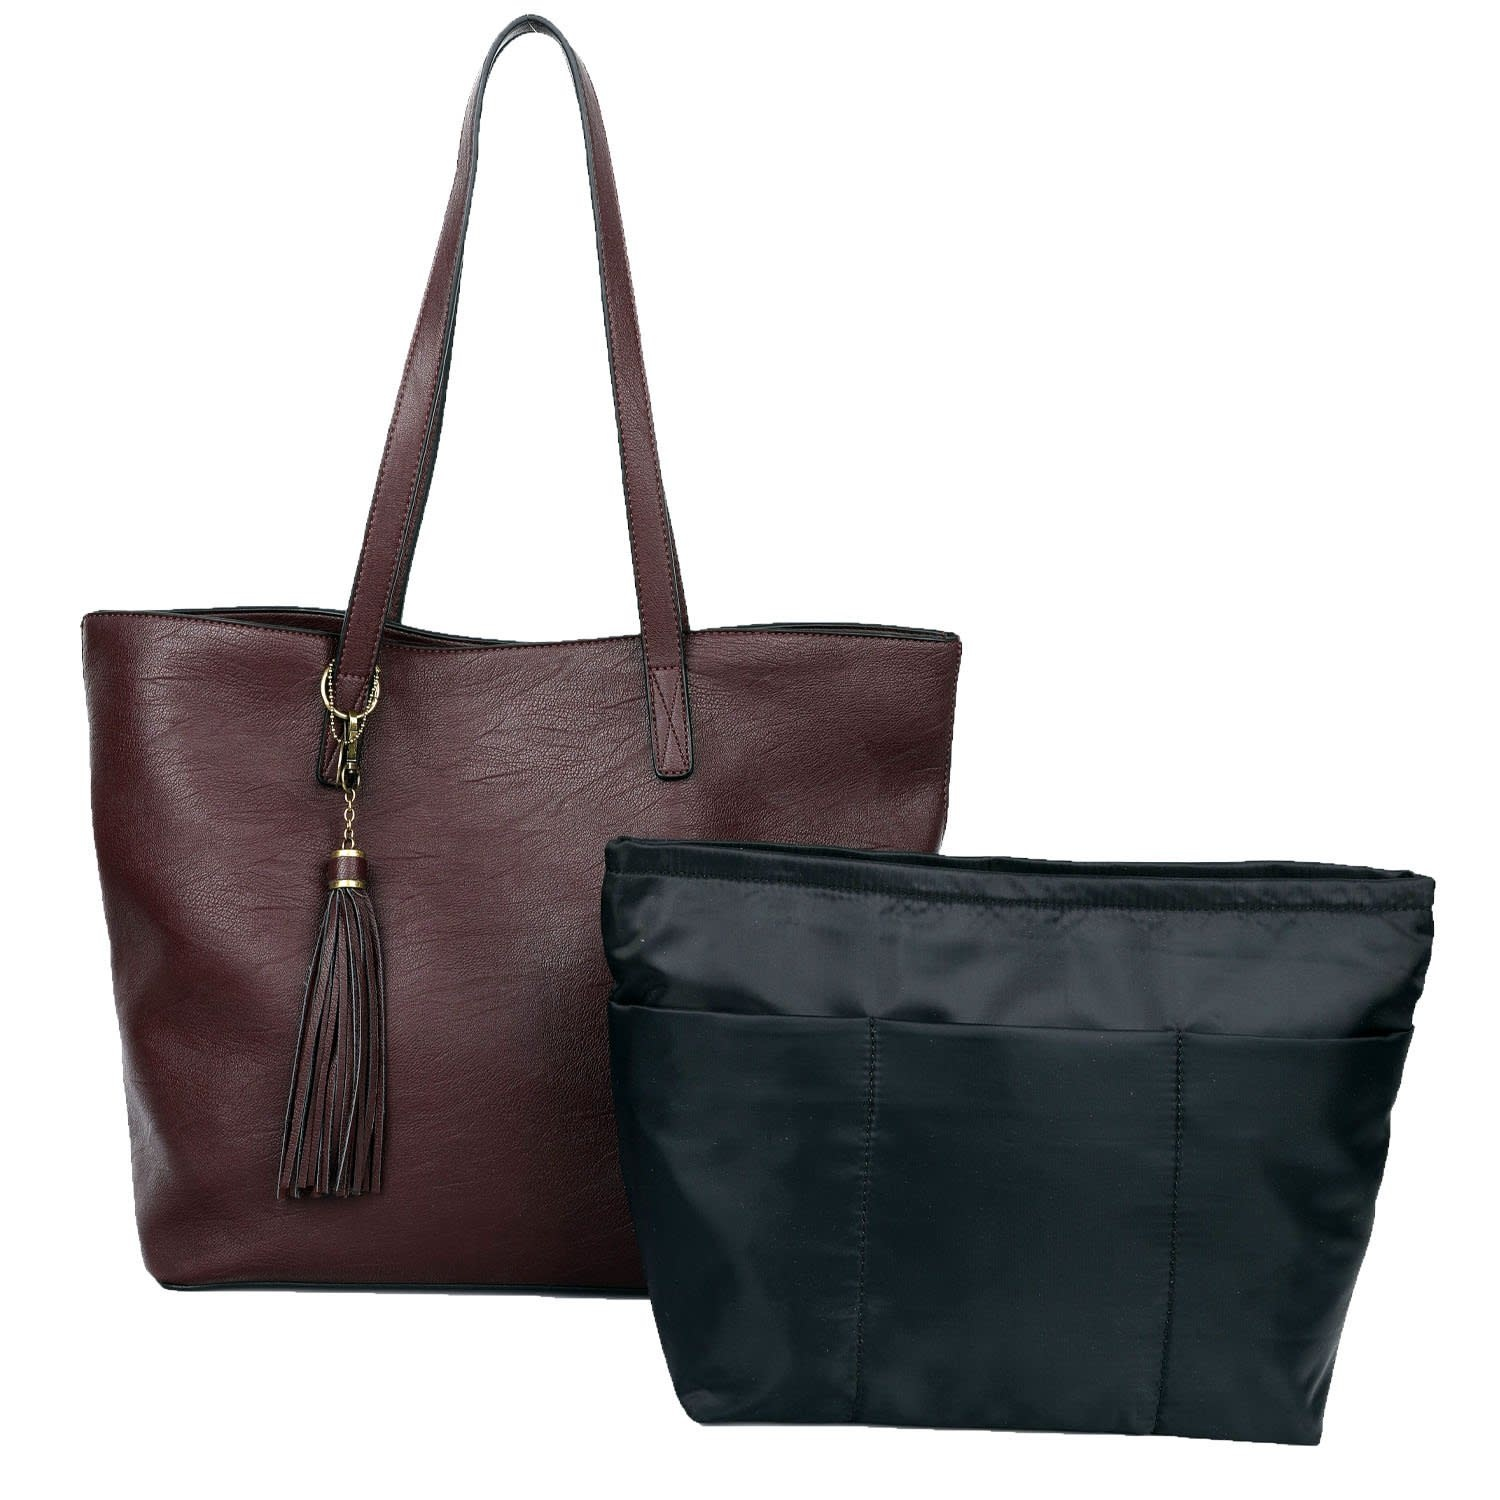 2-in-1 Large Lucia Tassel Bag